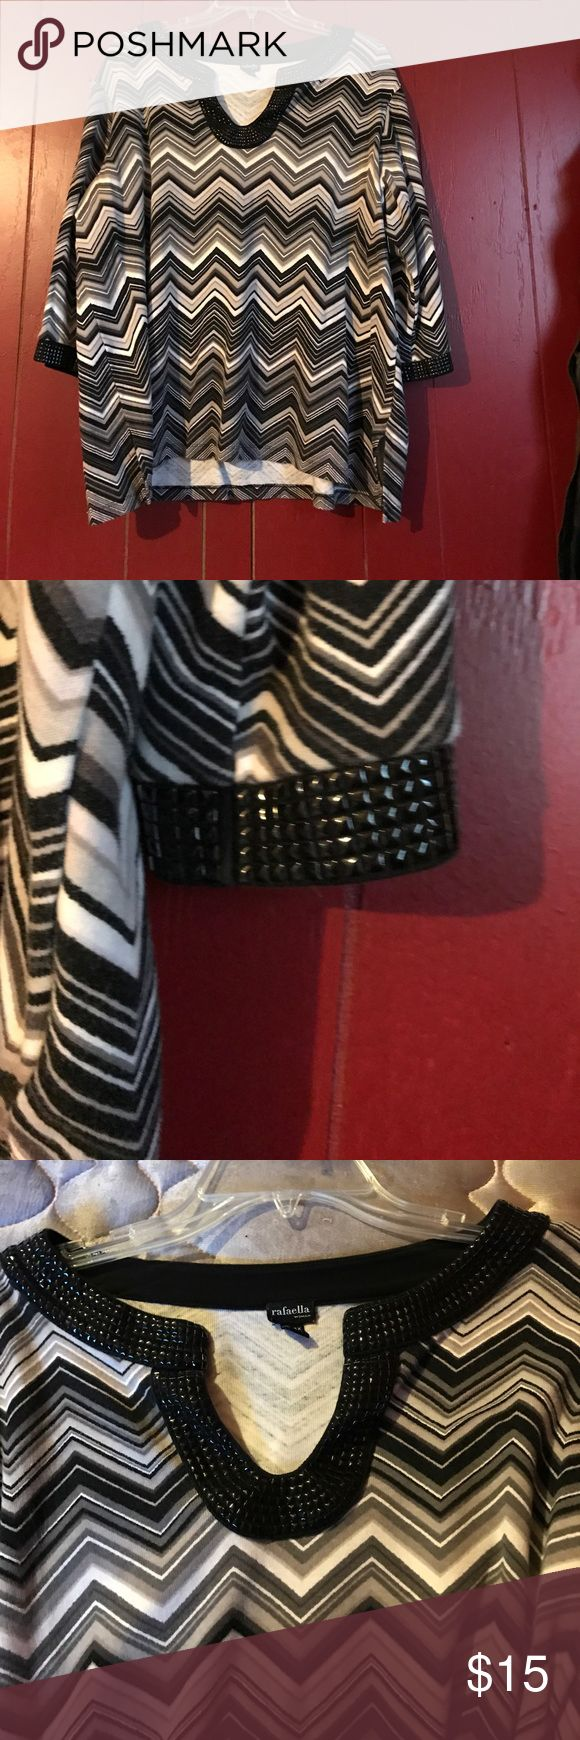 Chevron top with black studs *final price* Studded neck and sleeves Rafaella Tops Tees - Long Sleeve